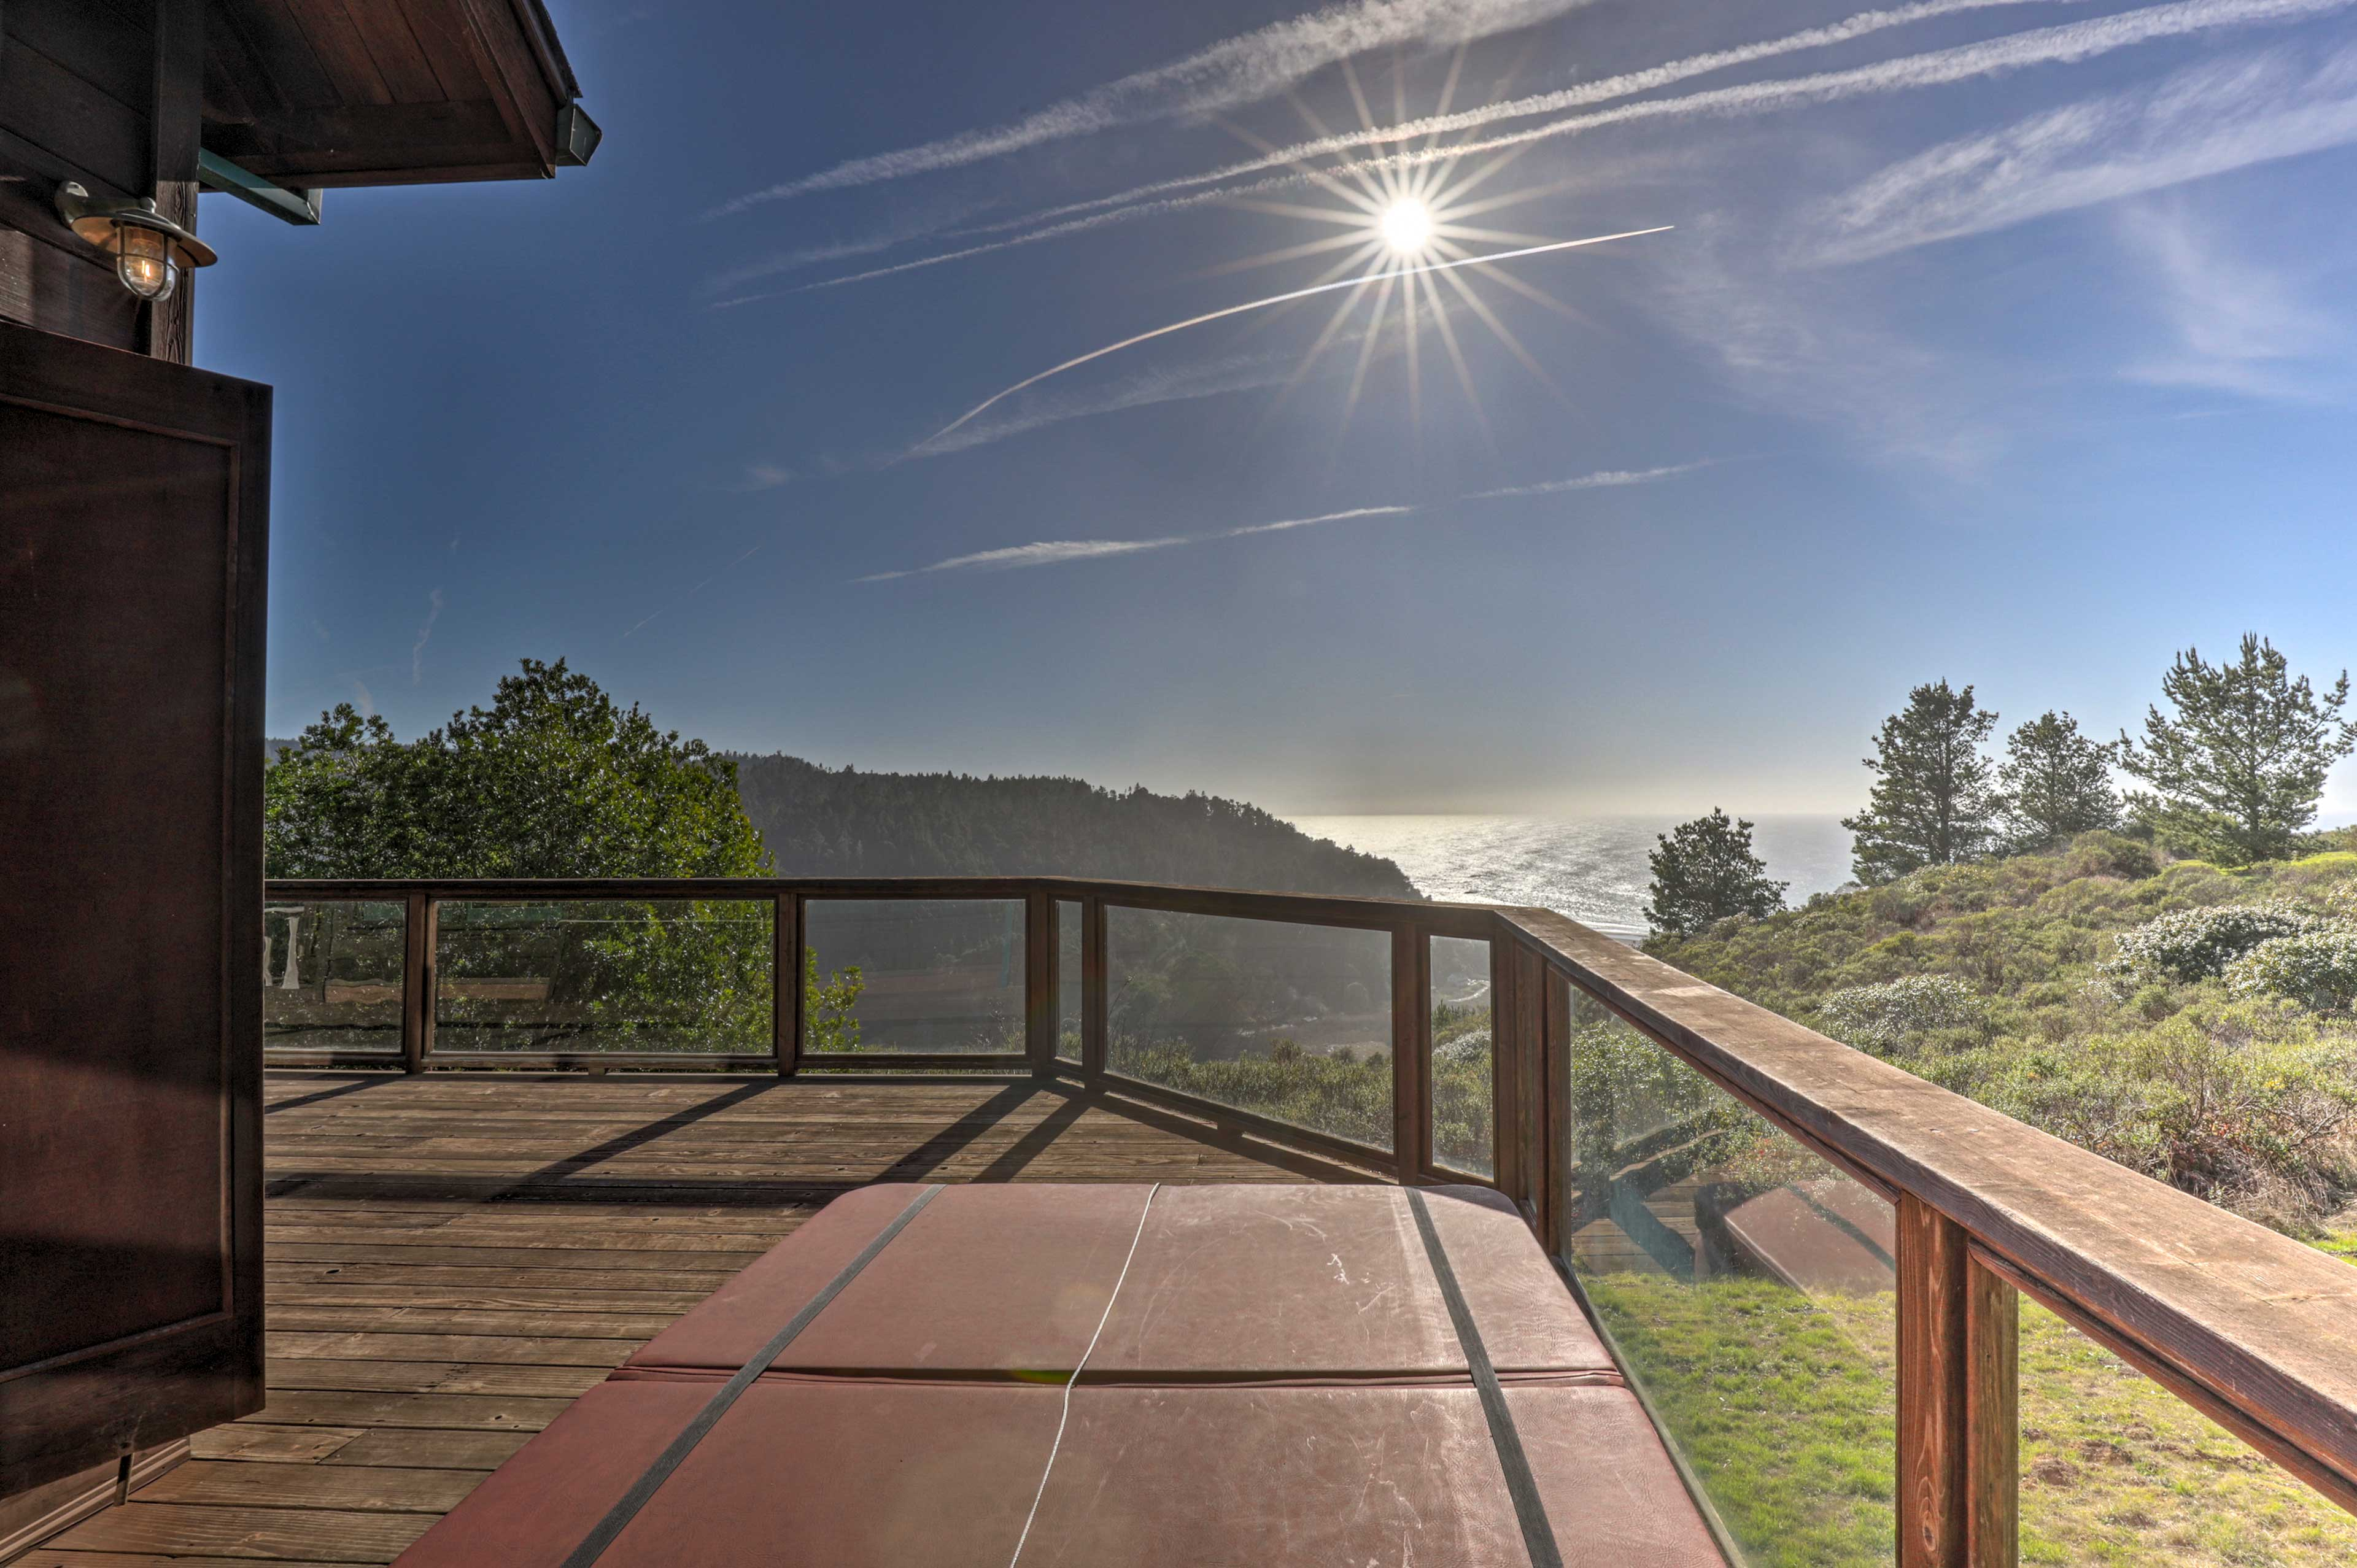 Glass railings ensure nothing obscures the 360 degree view.